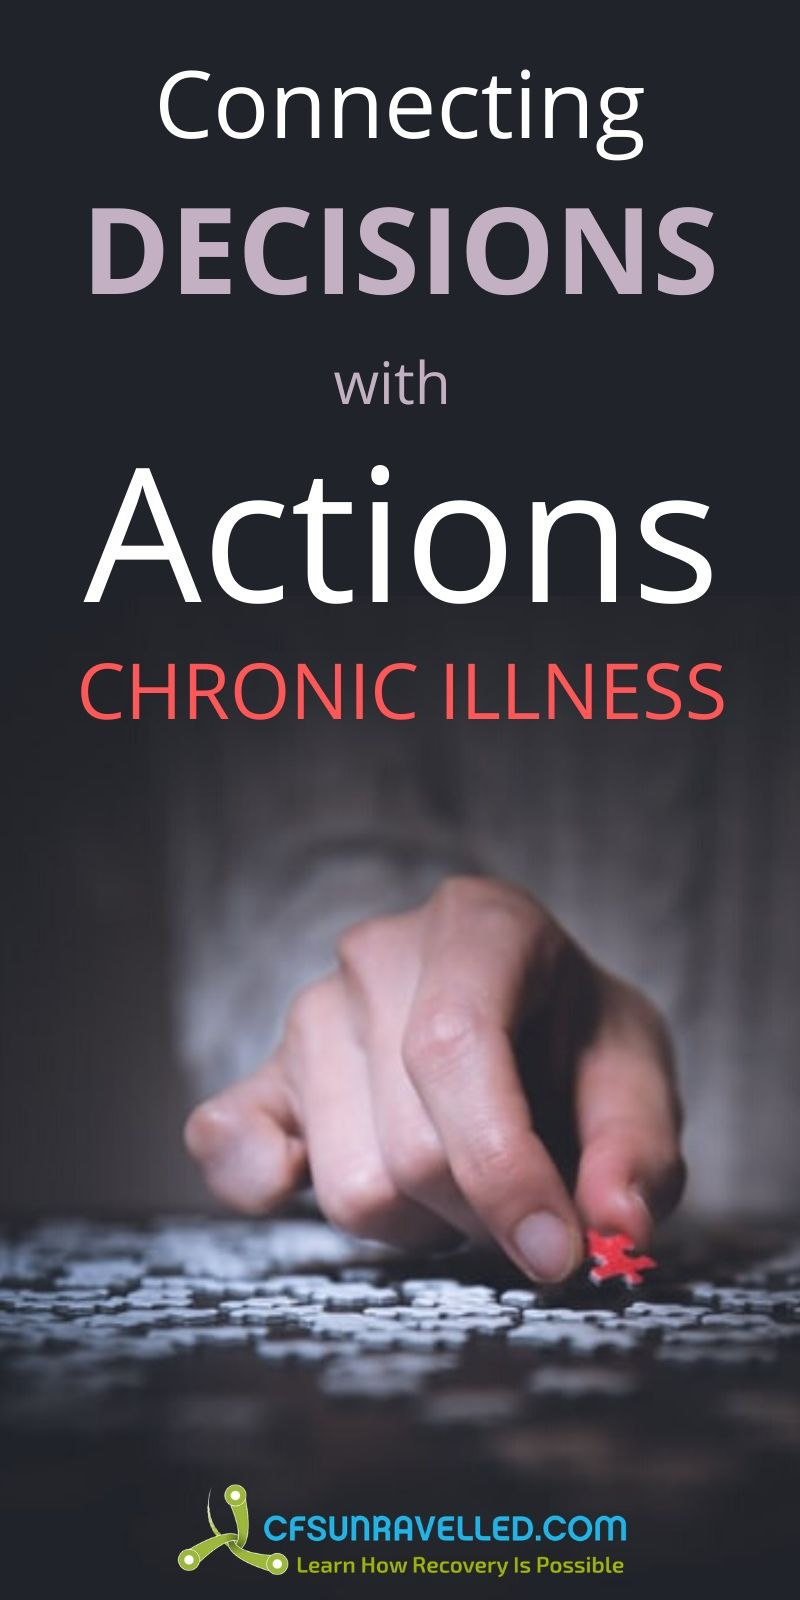 Hand holding puzzle piece with connecting decisions  with actions for chronic illness text